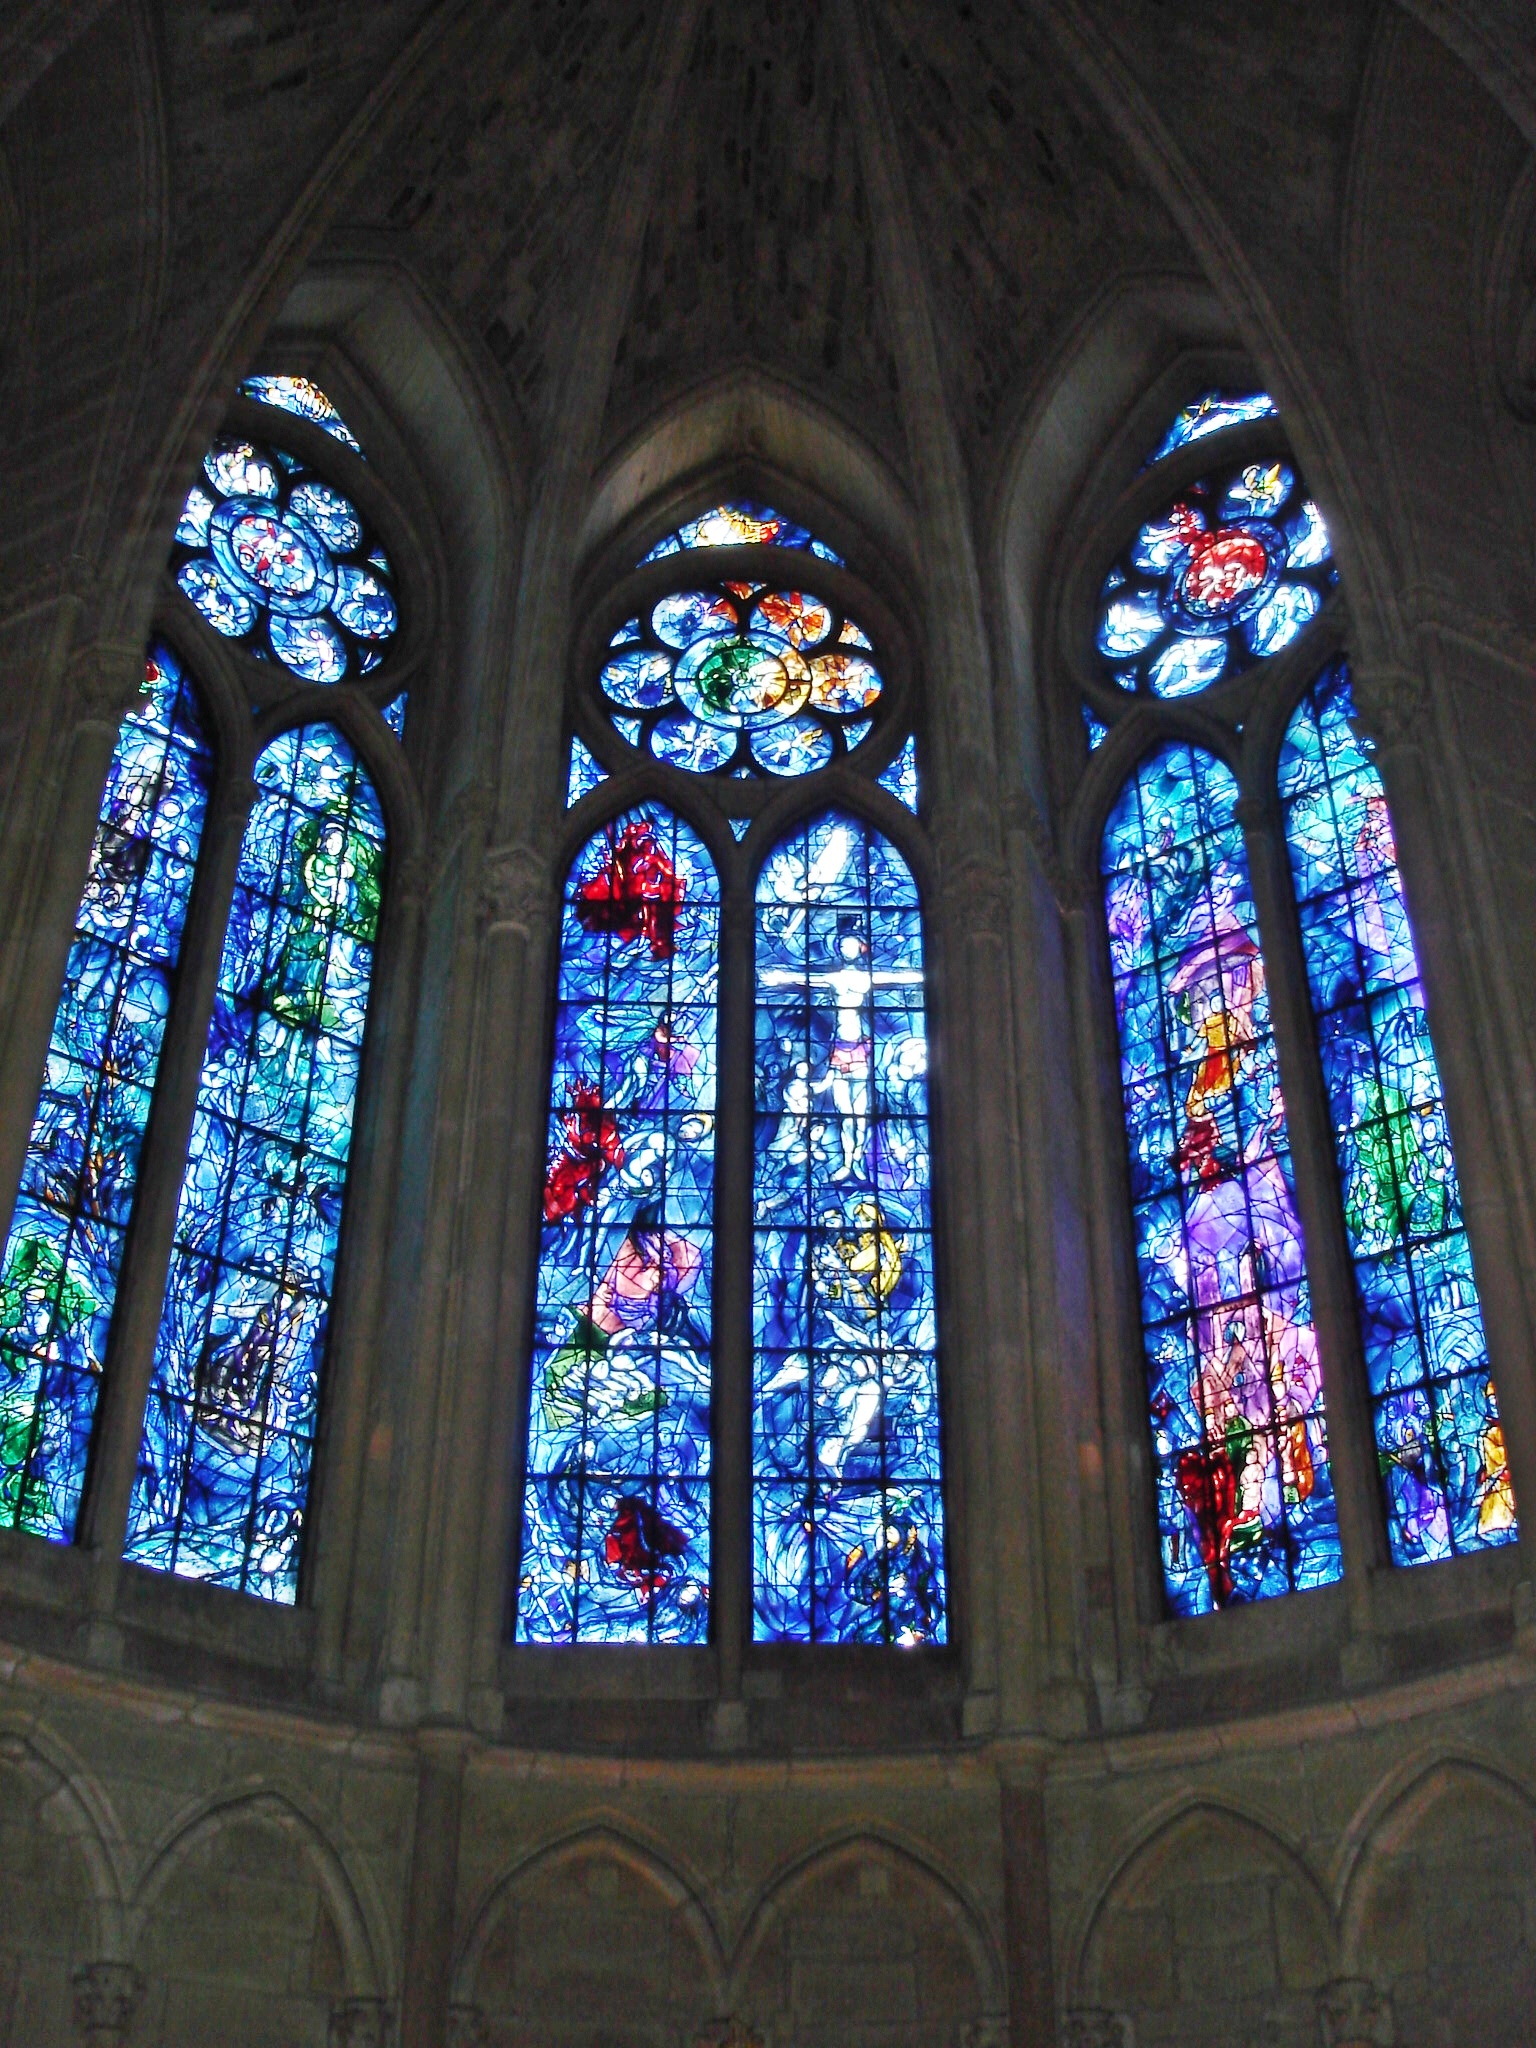 Chagall windows reims cathedral